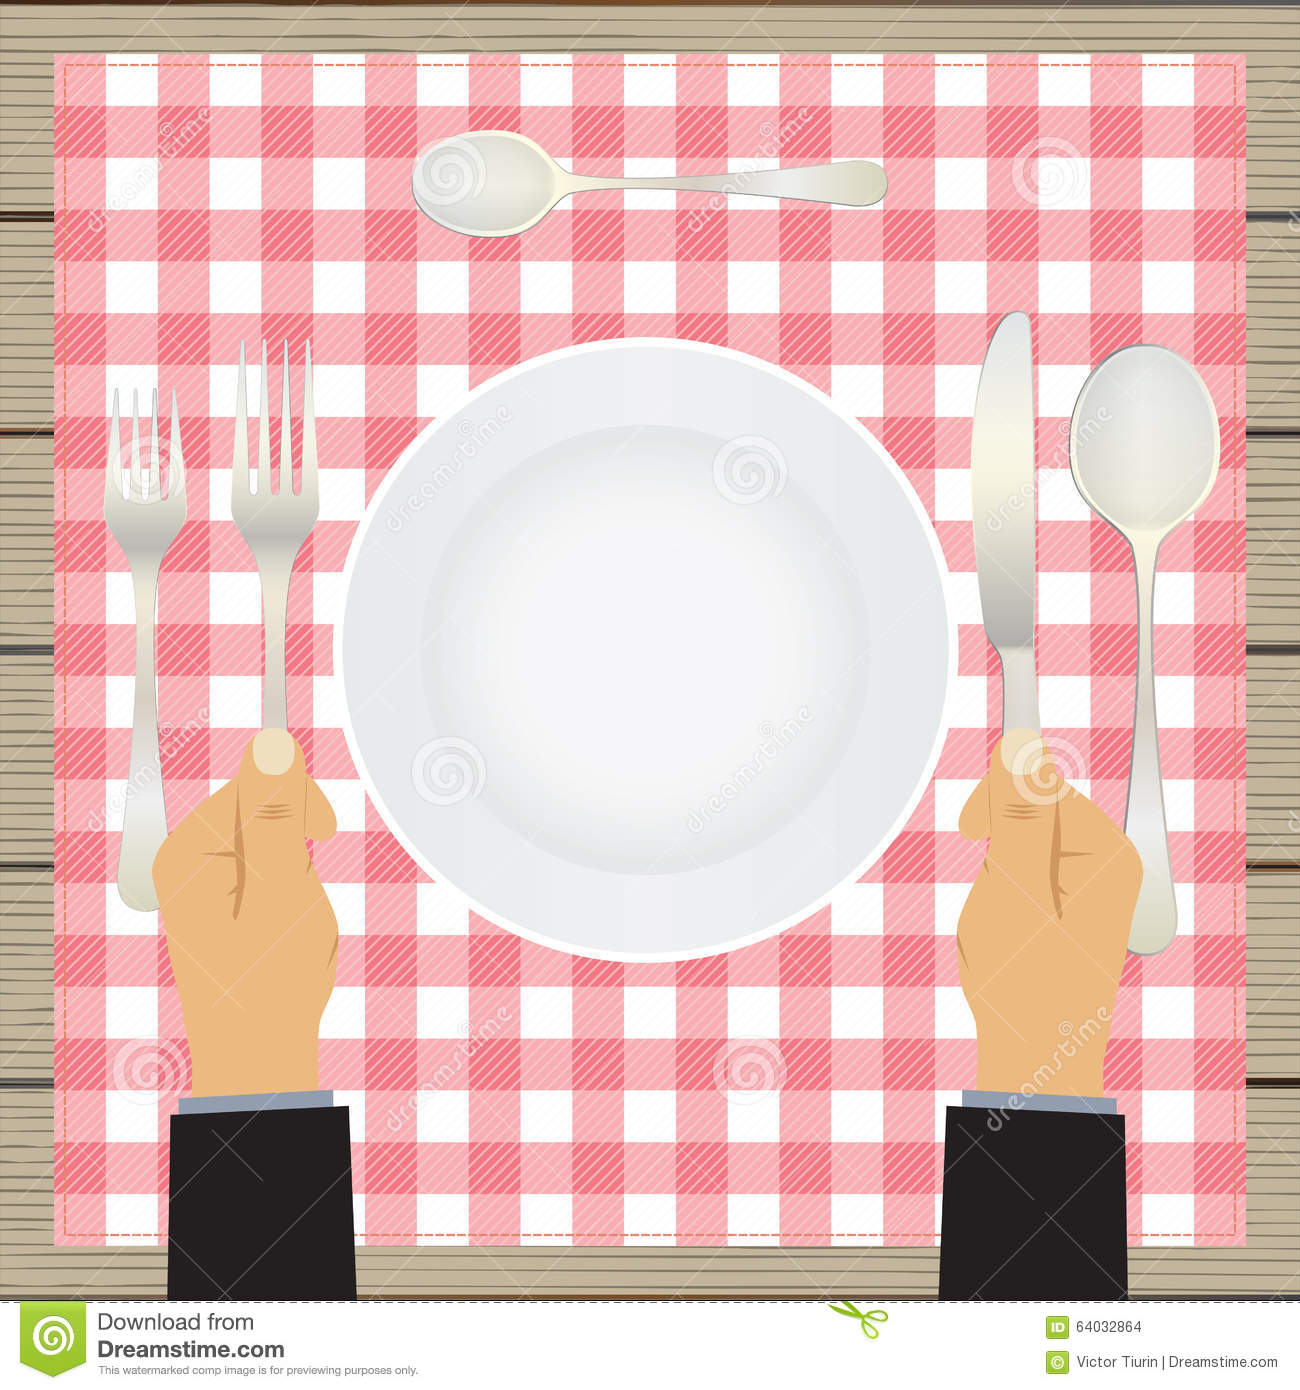 Hand with a knife and fork. Tableware.